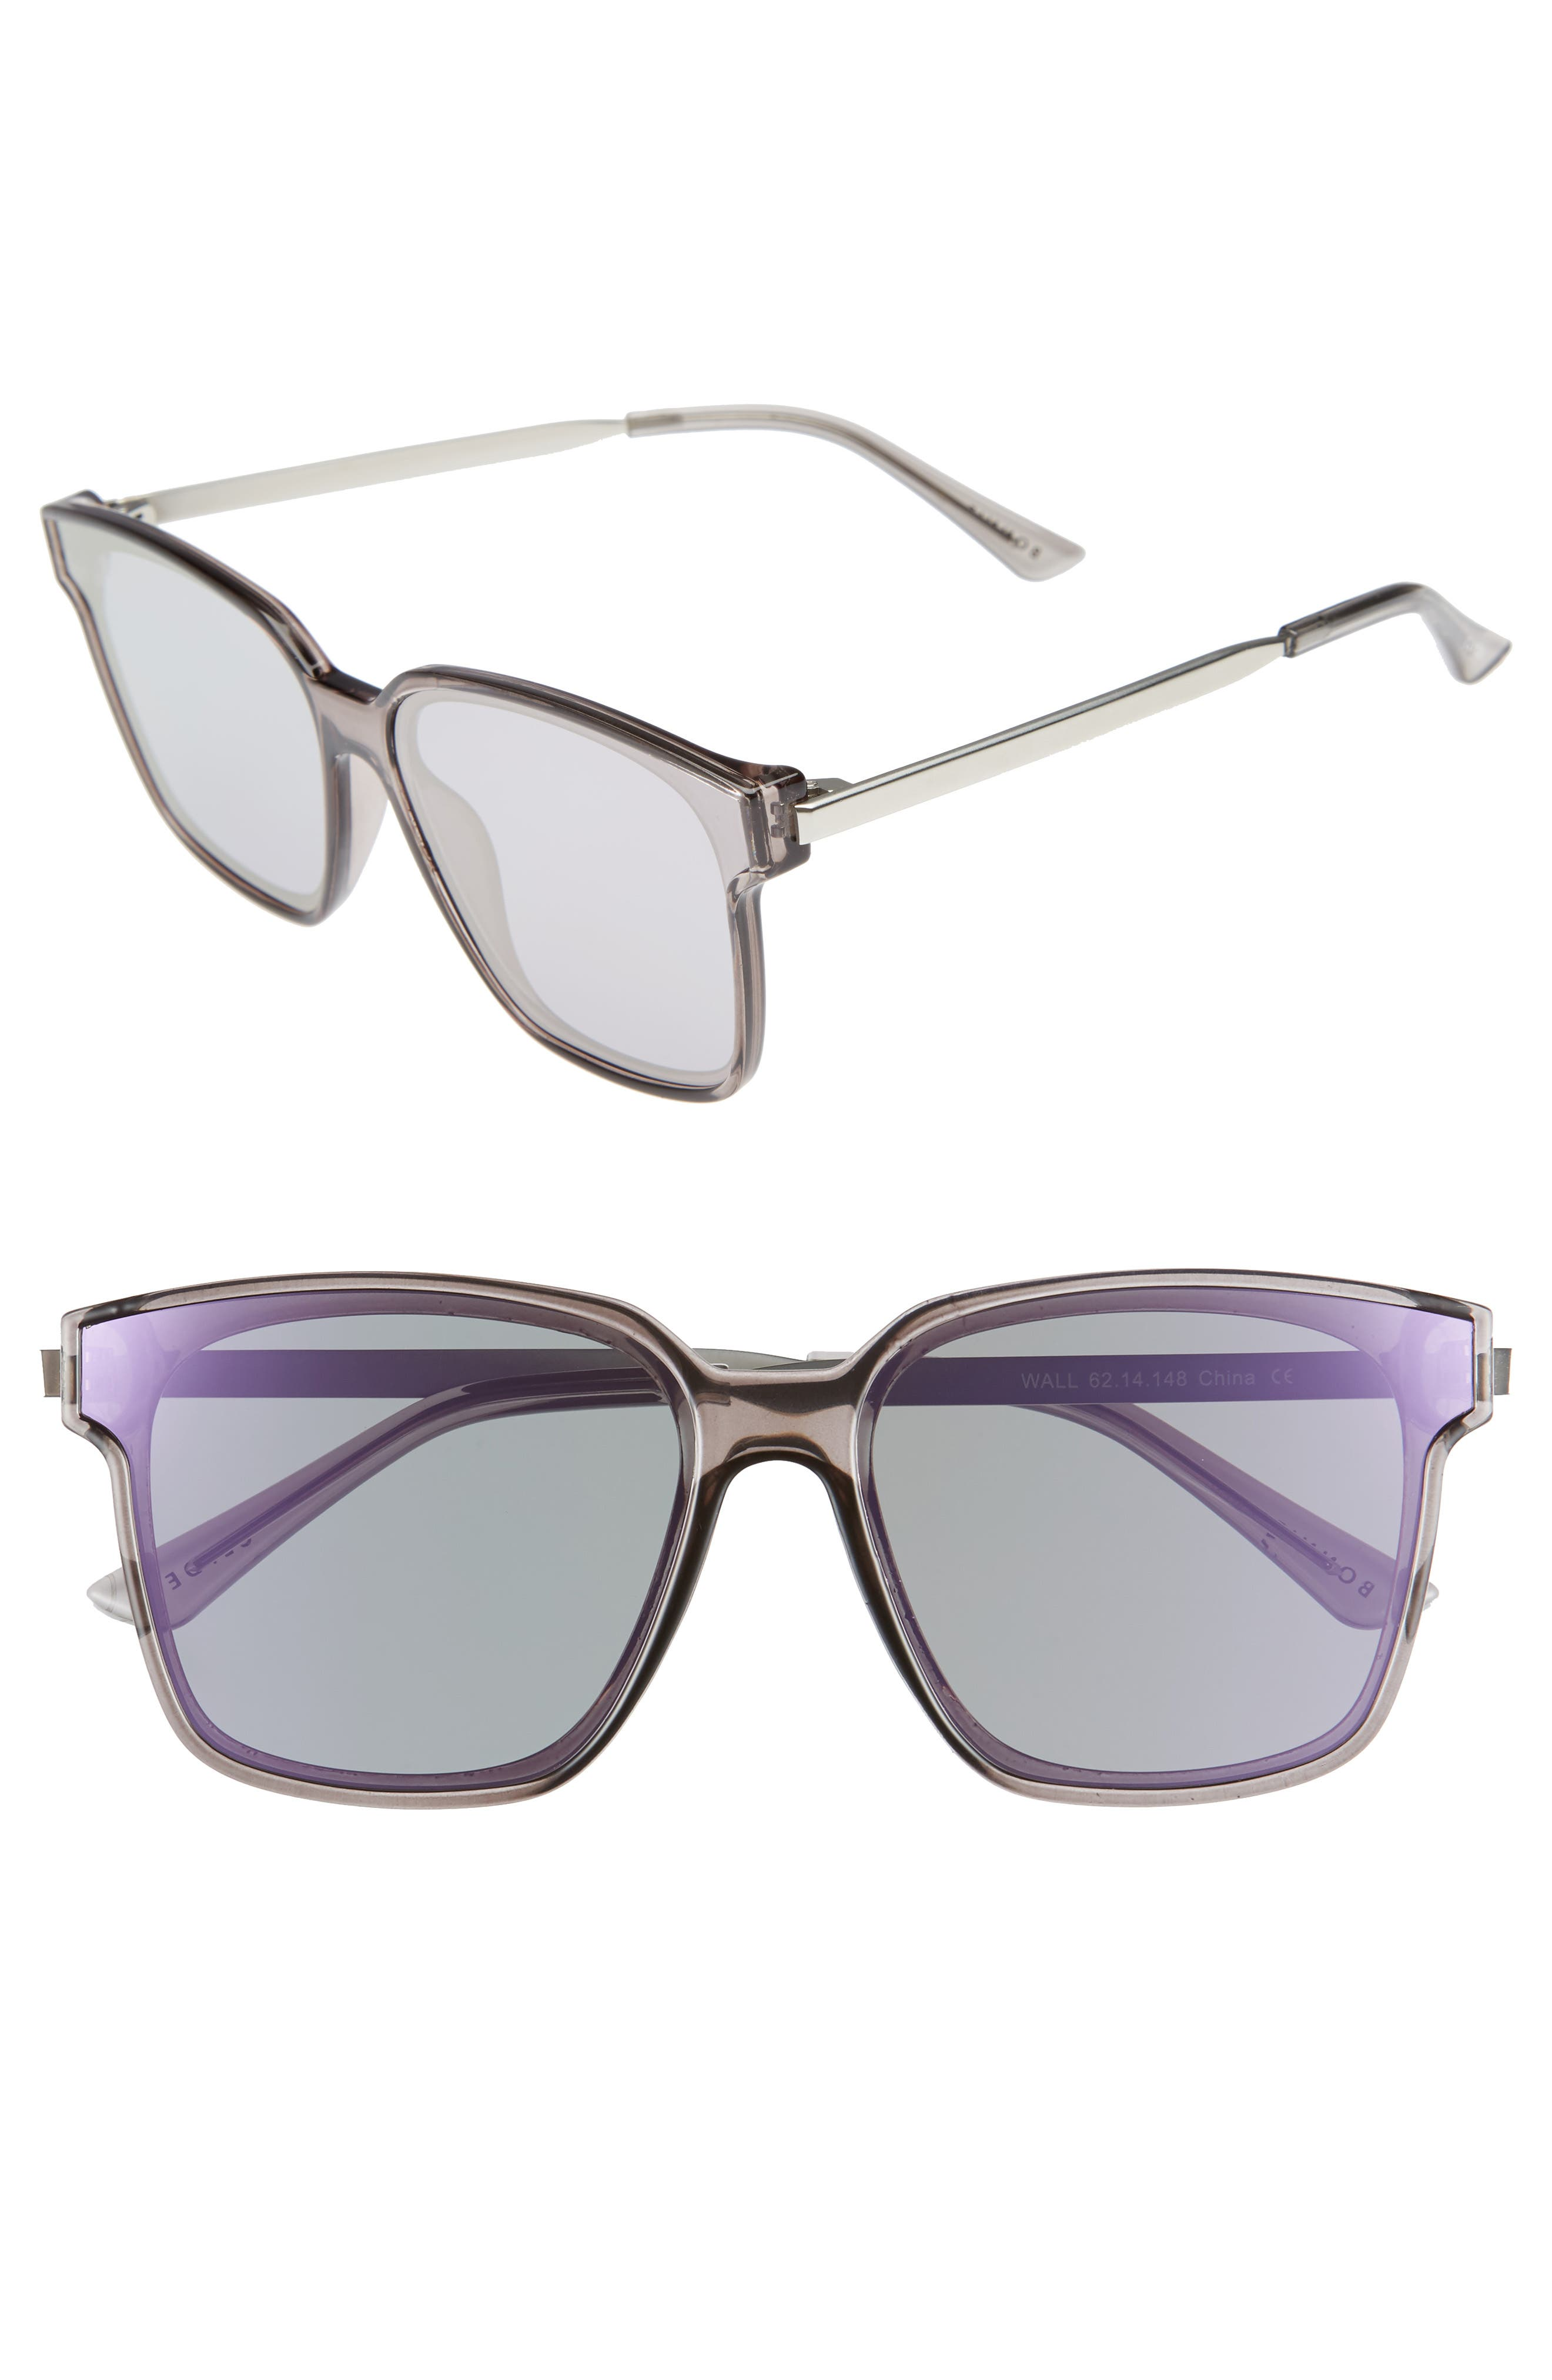 Main Image - Bonnie Clyde Wall 62mm Square Mirror Lens Sunglasses